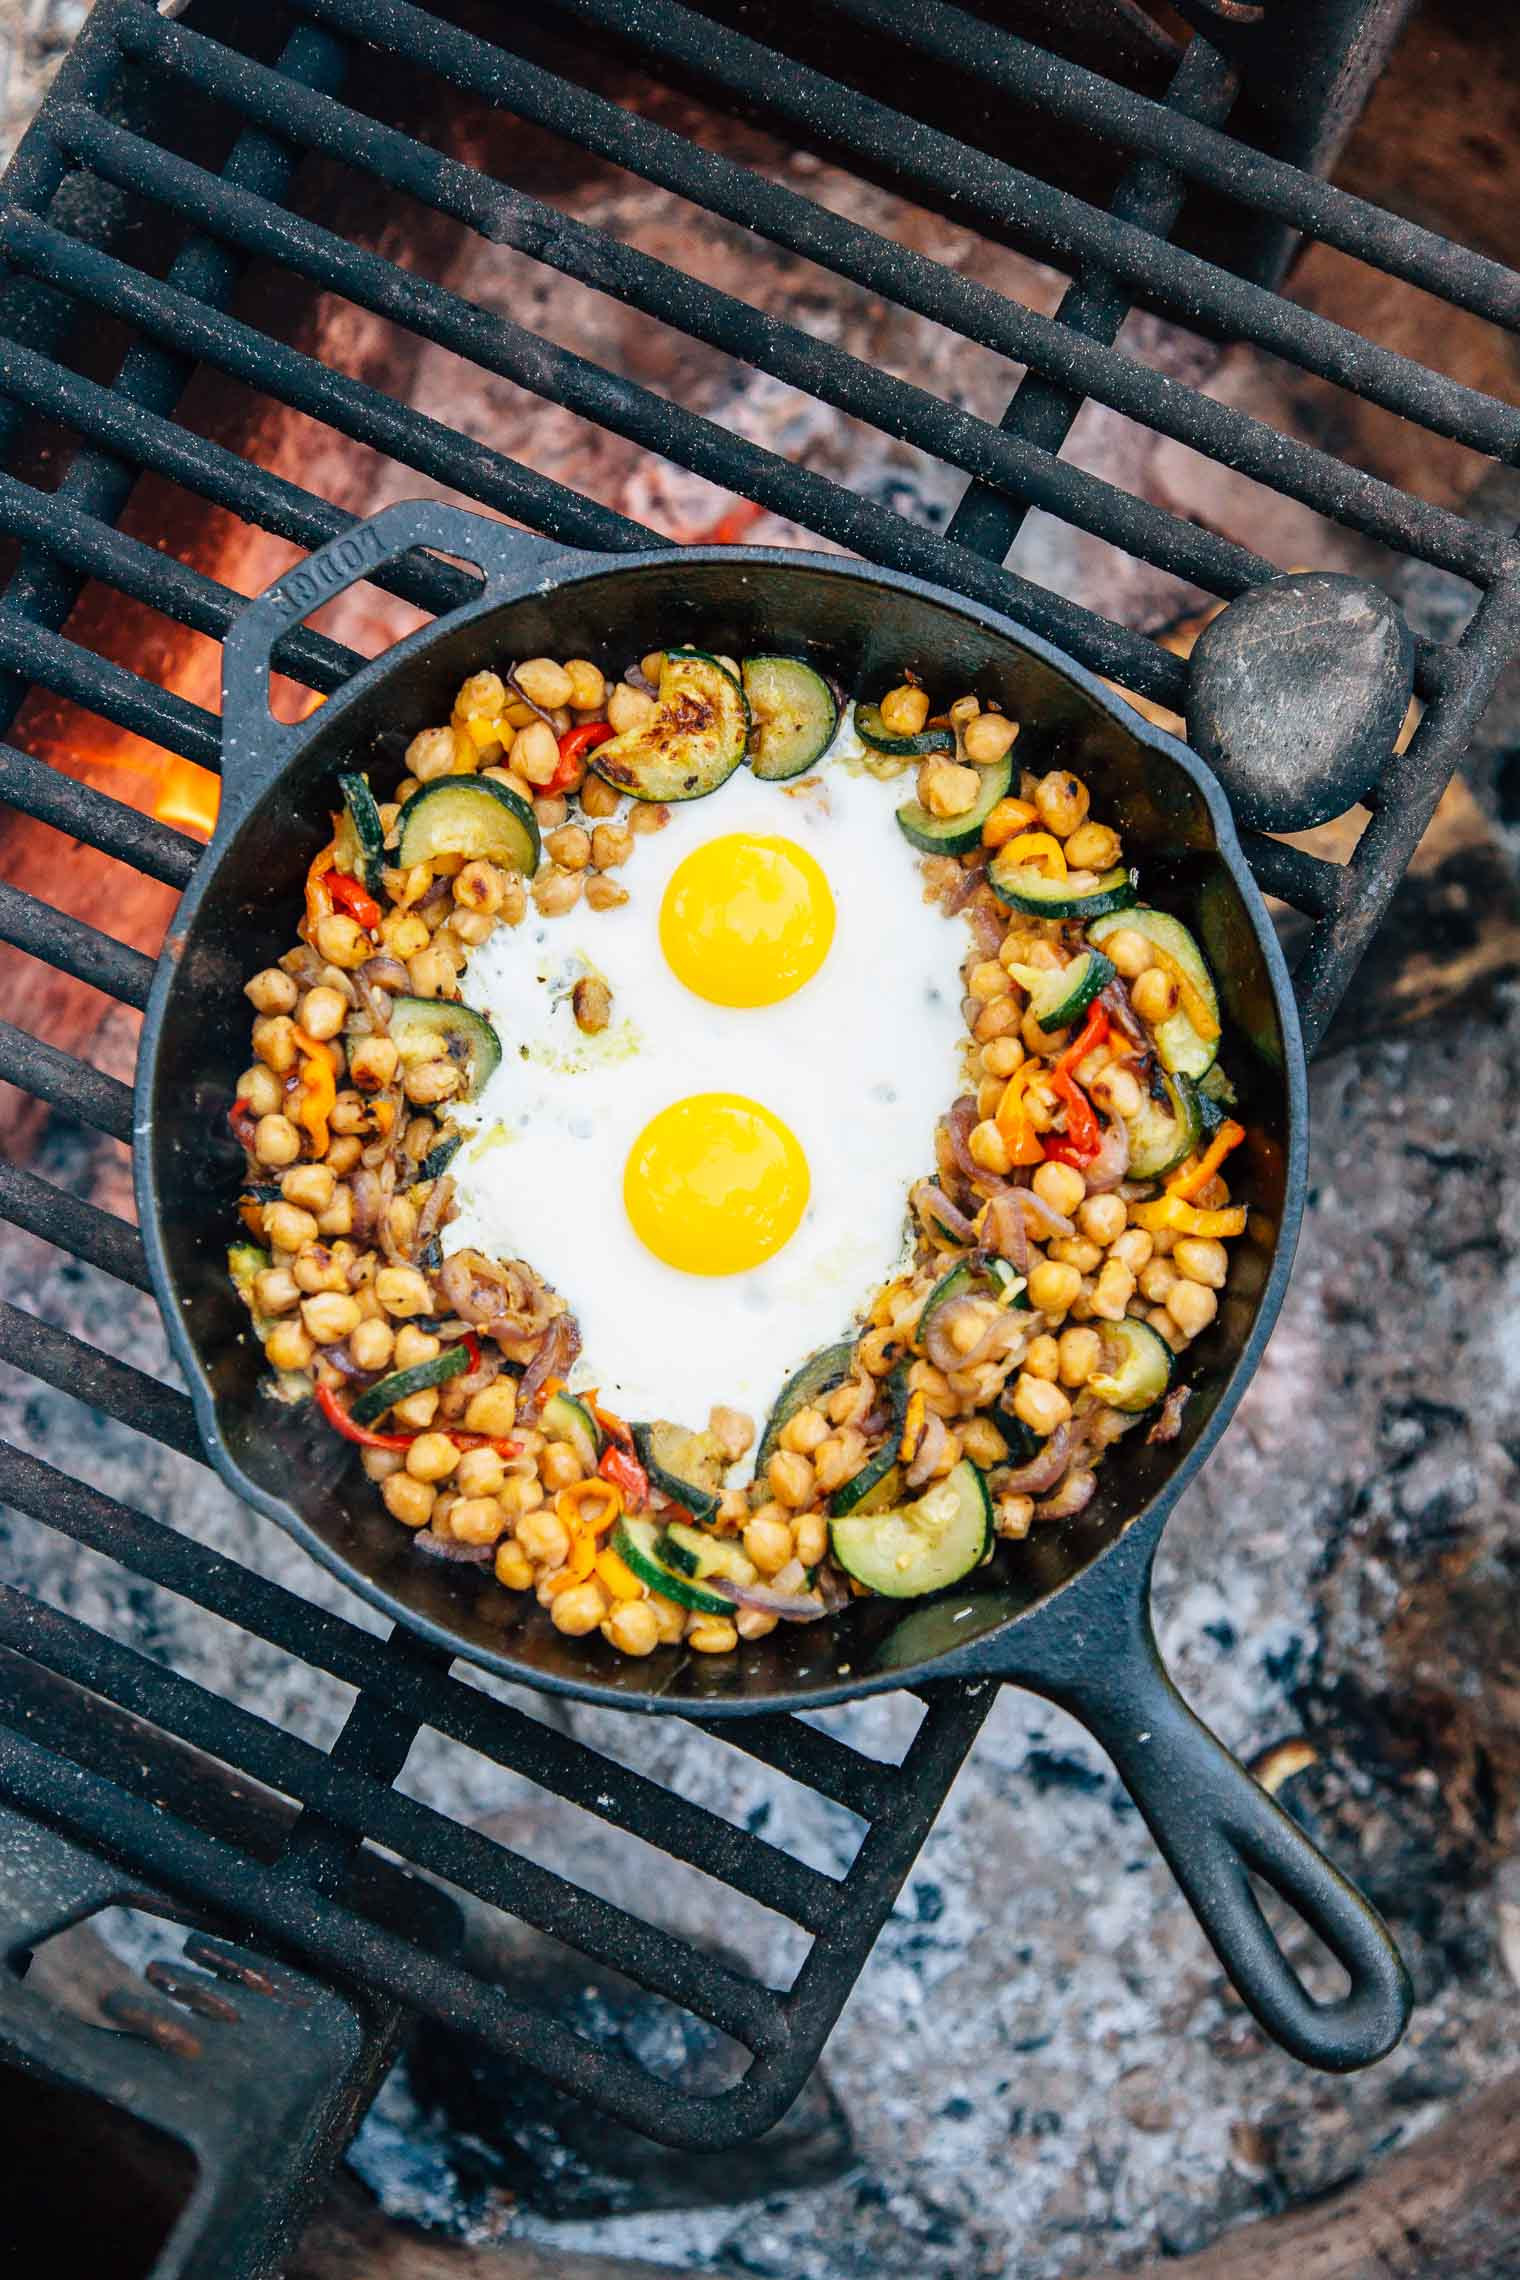 Chickpea and vegetable hash with two eggs in a cast iron skillet over a campfire